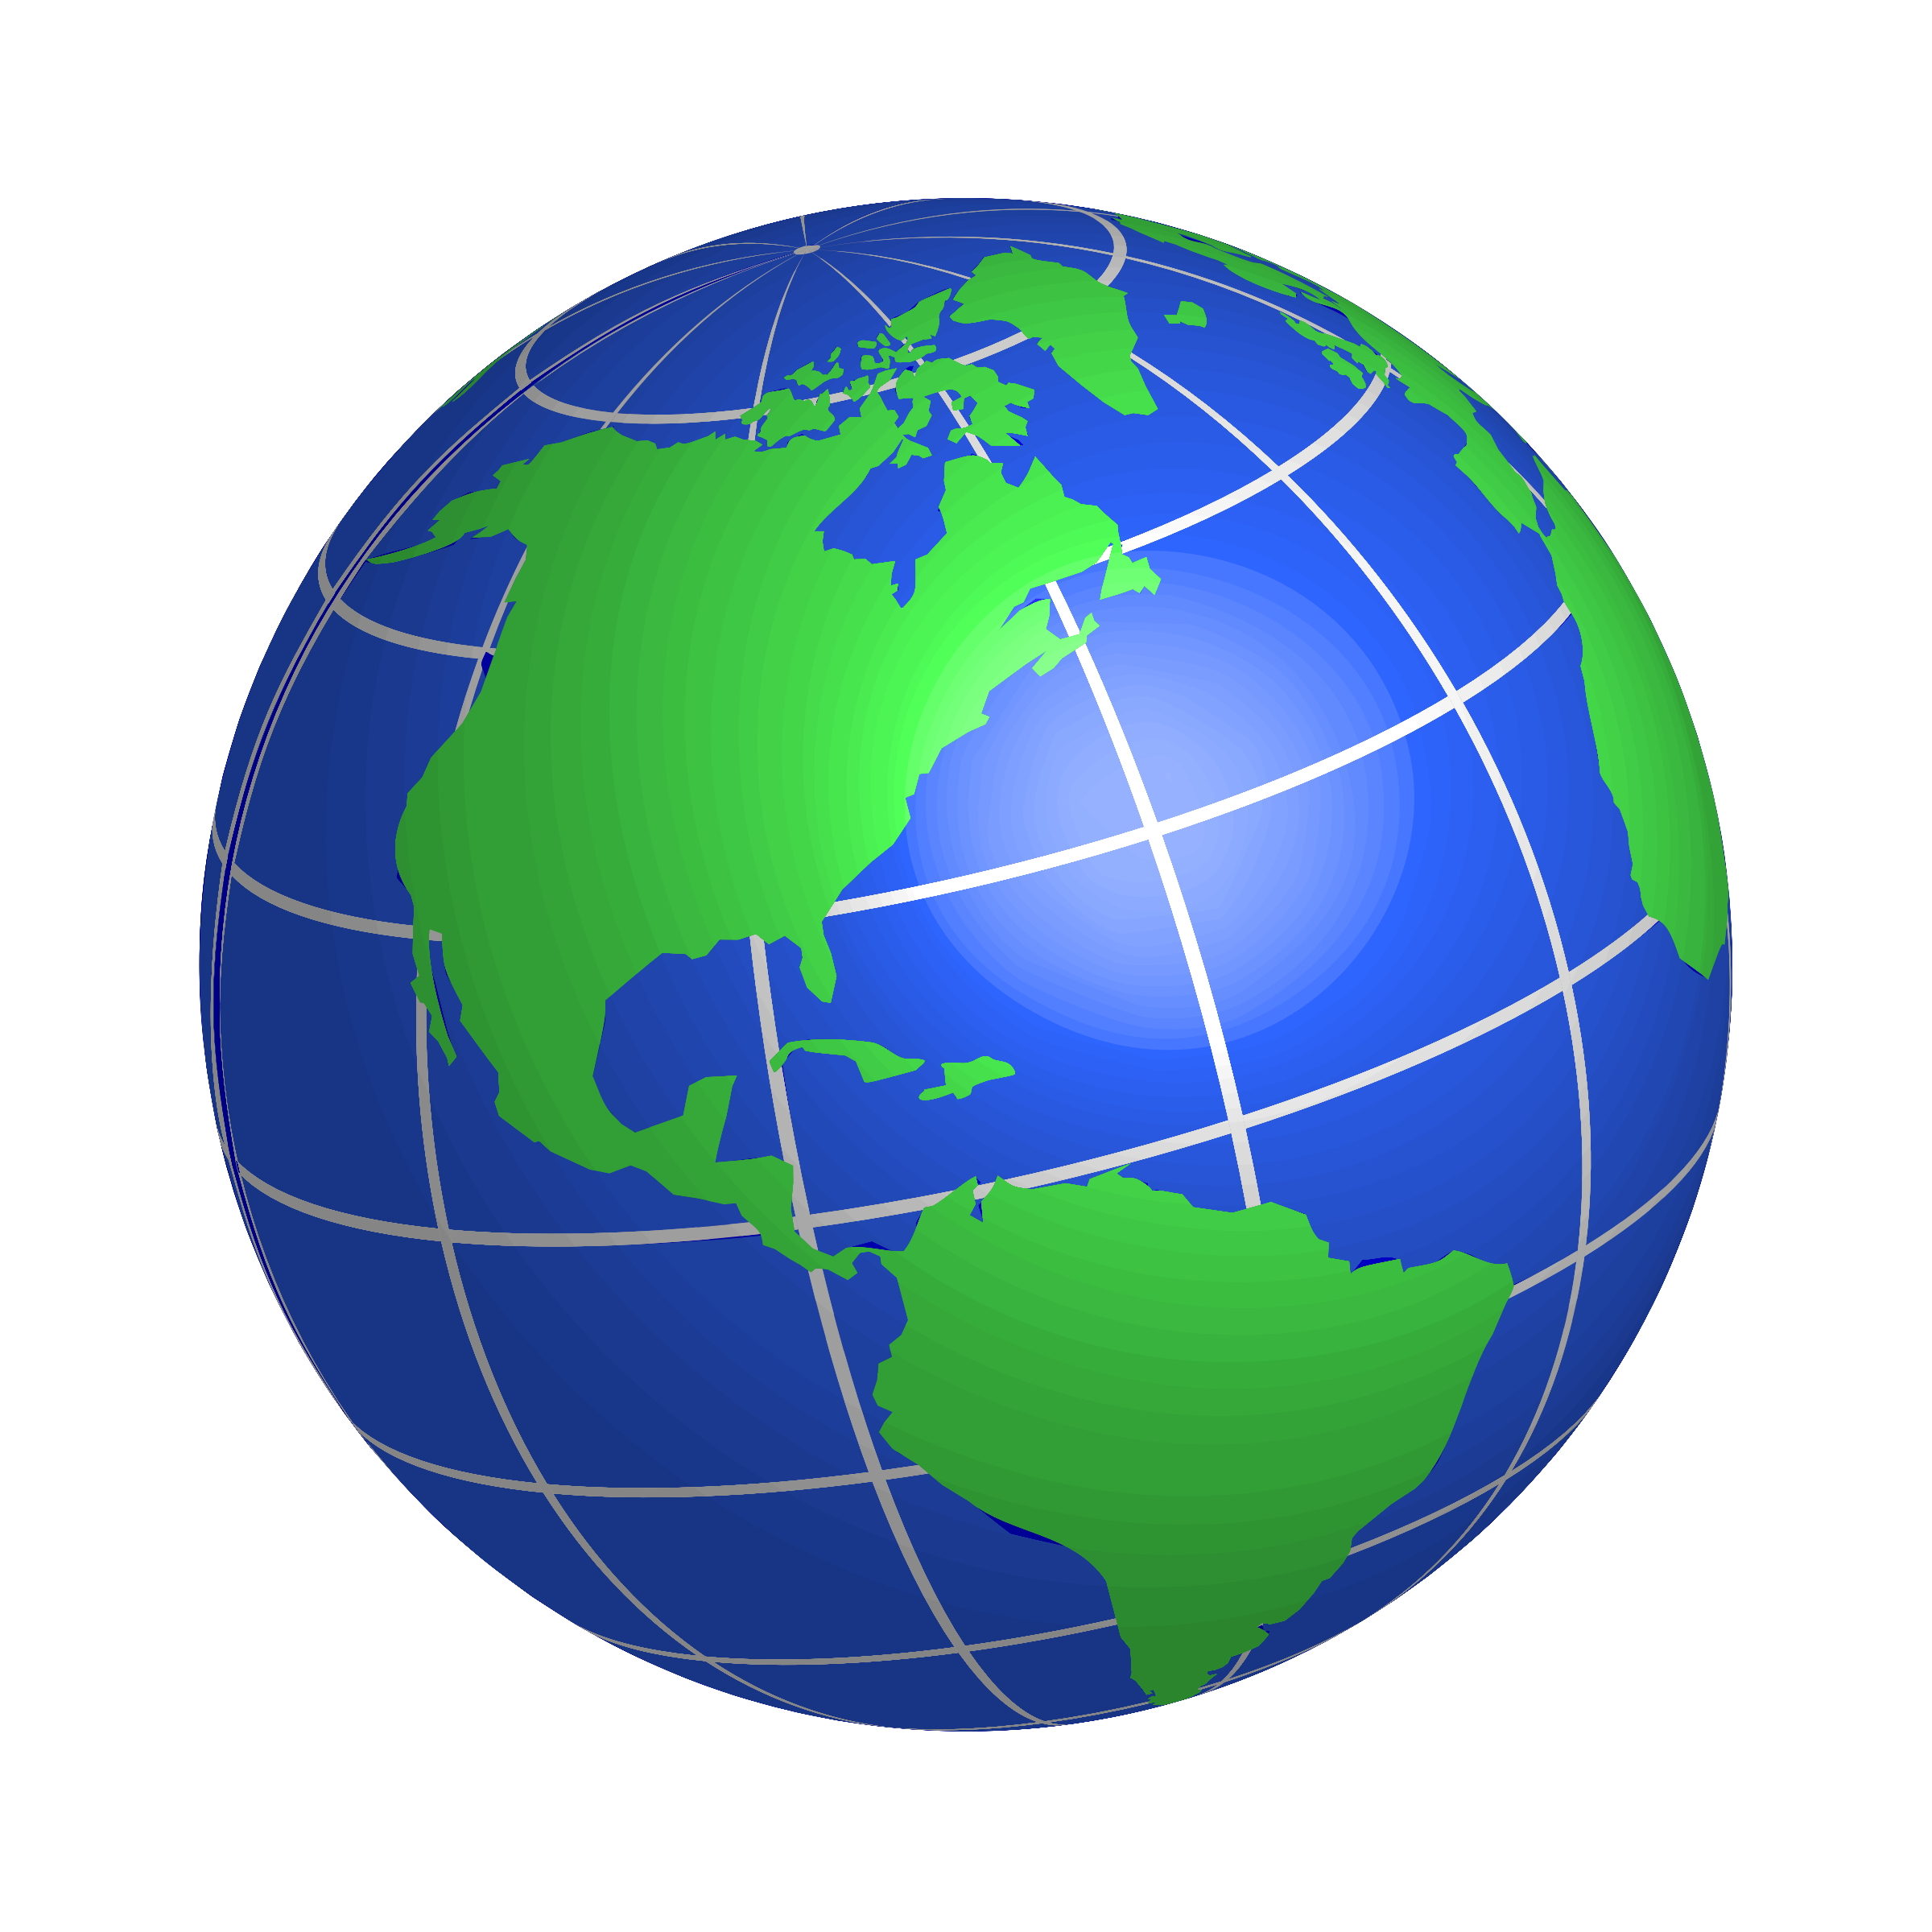 world vector png at getdrawings com free for personal use world